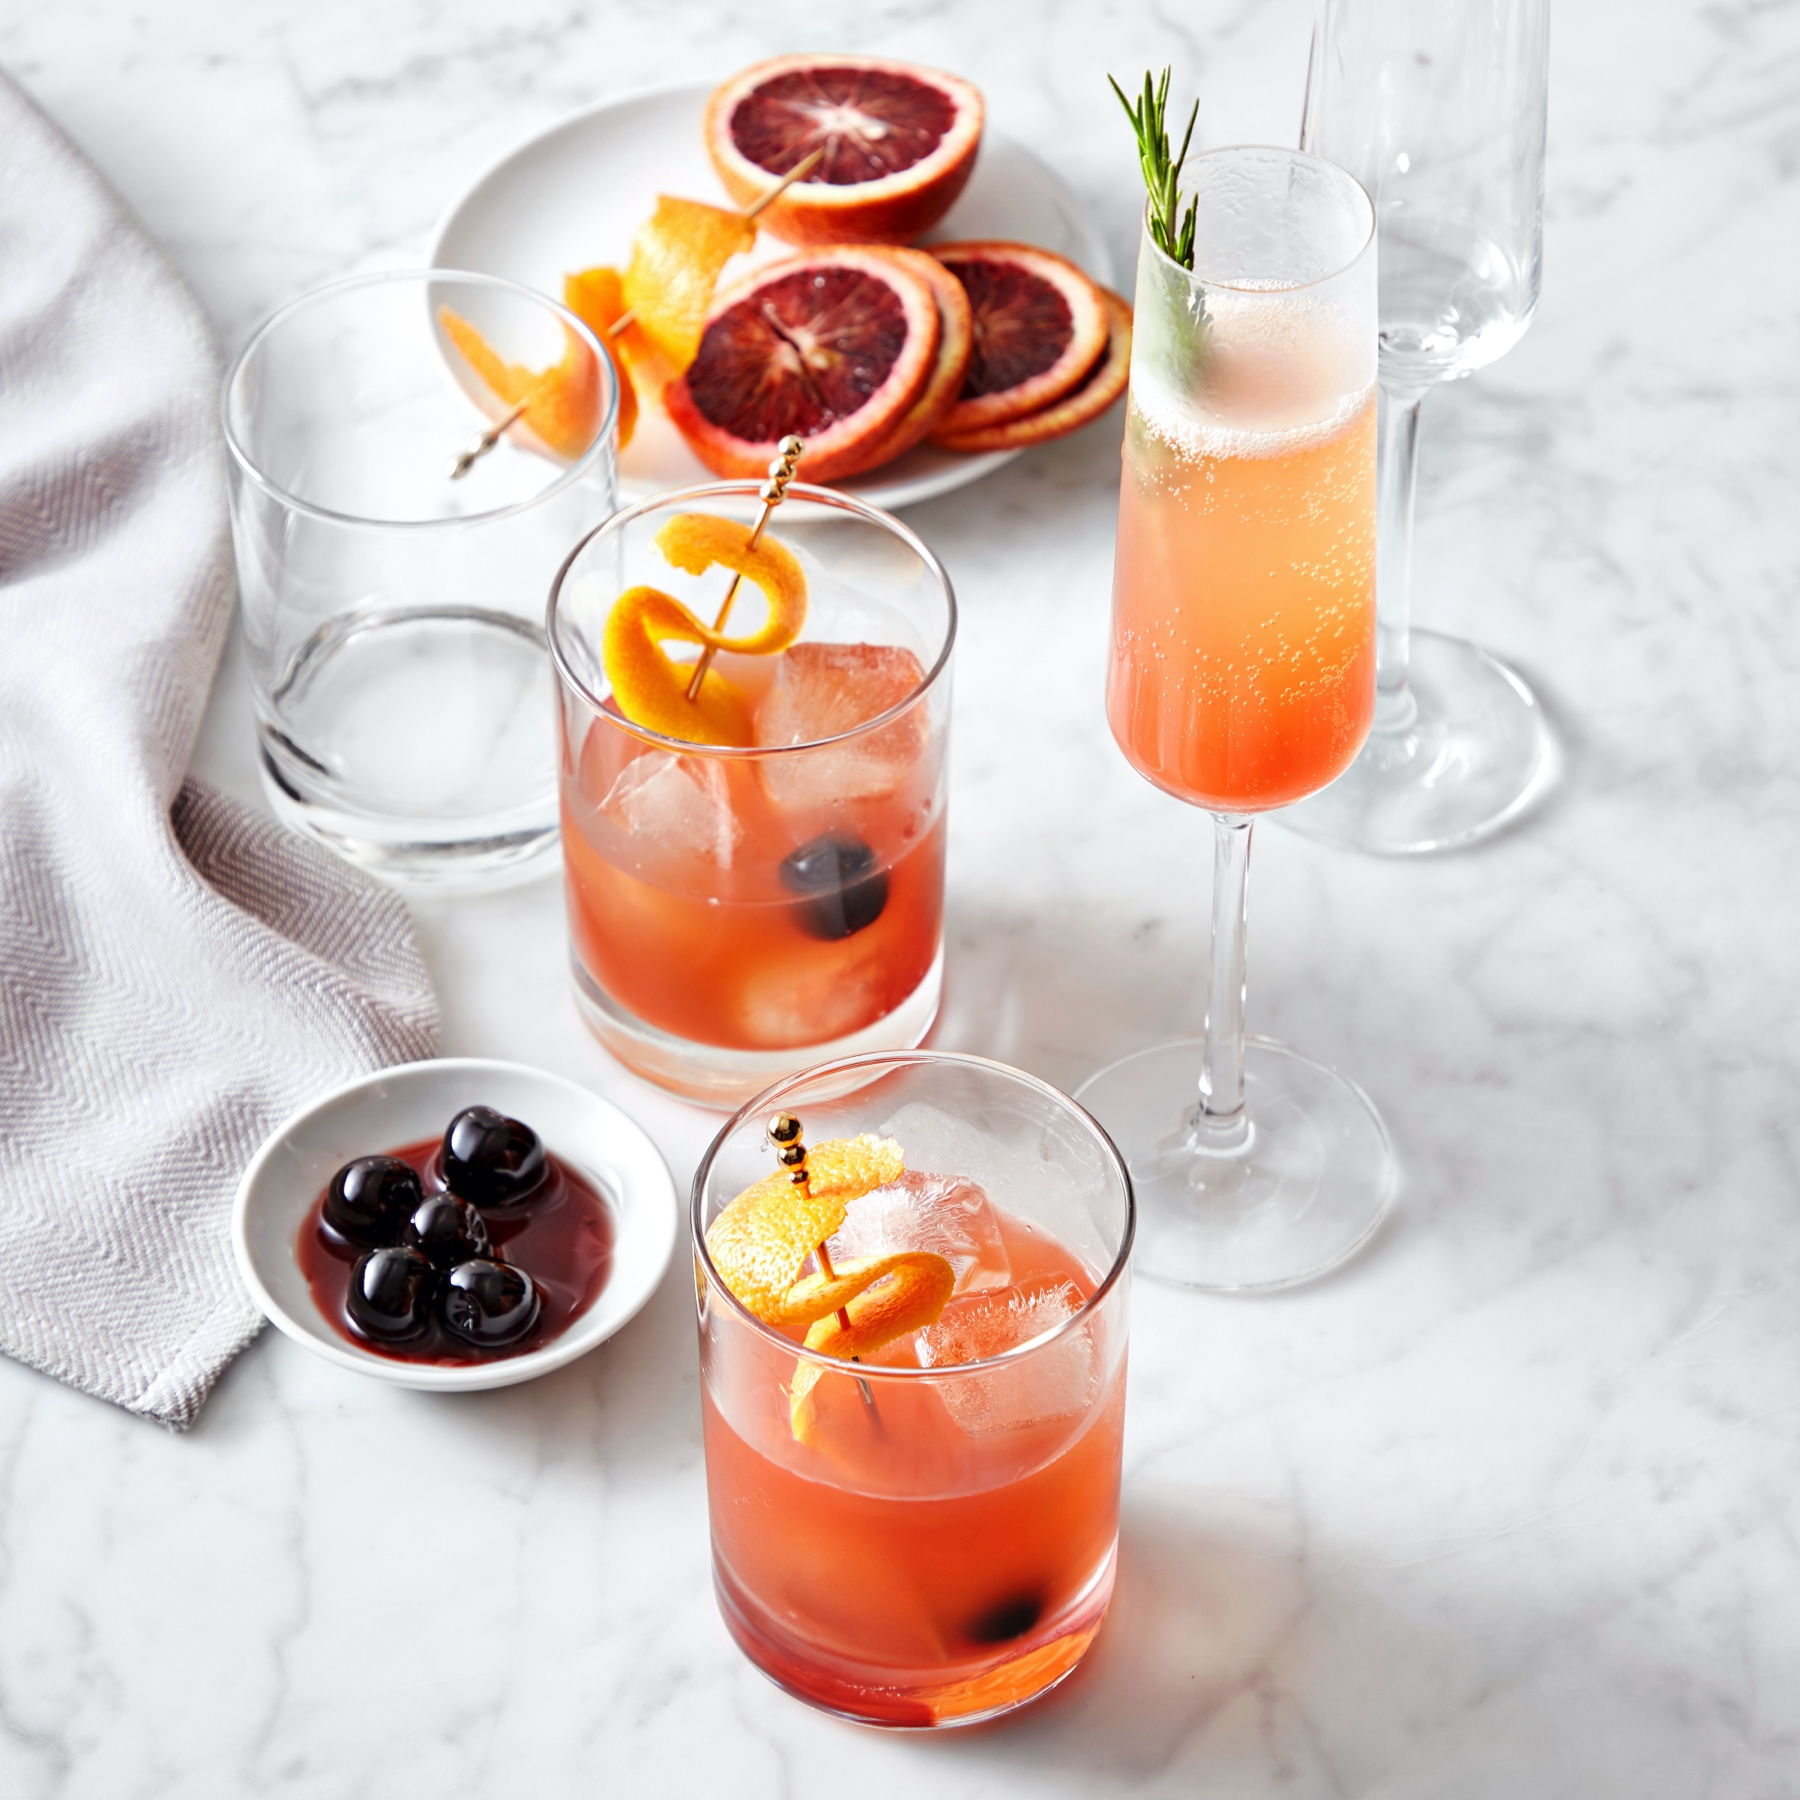 Gaby Dalkin's Blood Orange Peach Two Ways cocktail inspired by the classic spritz